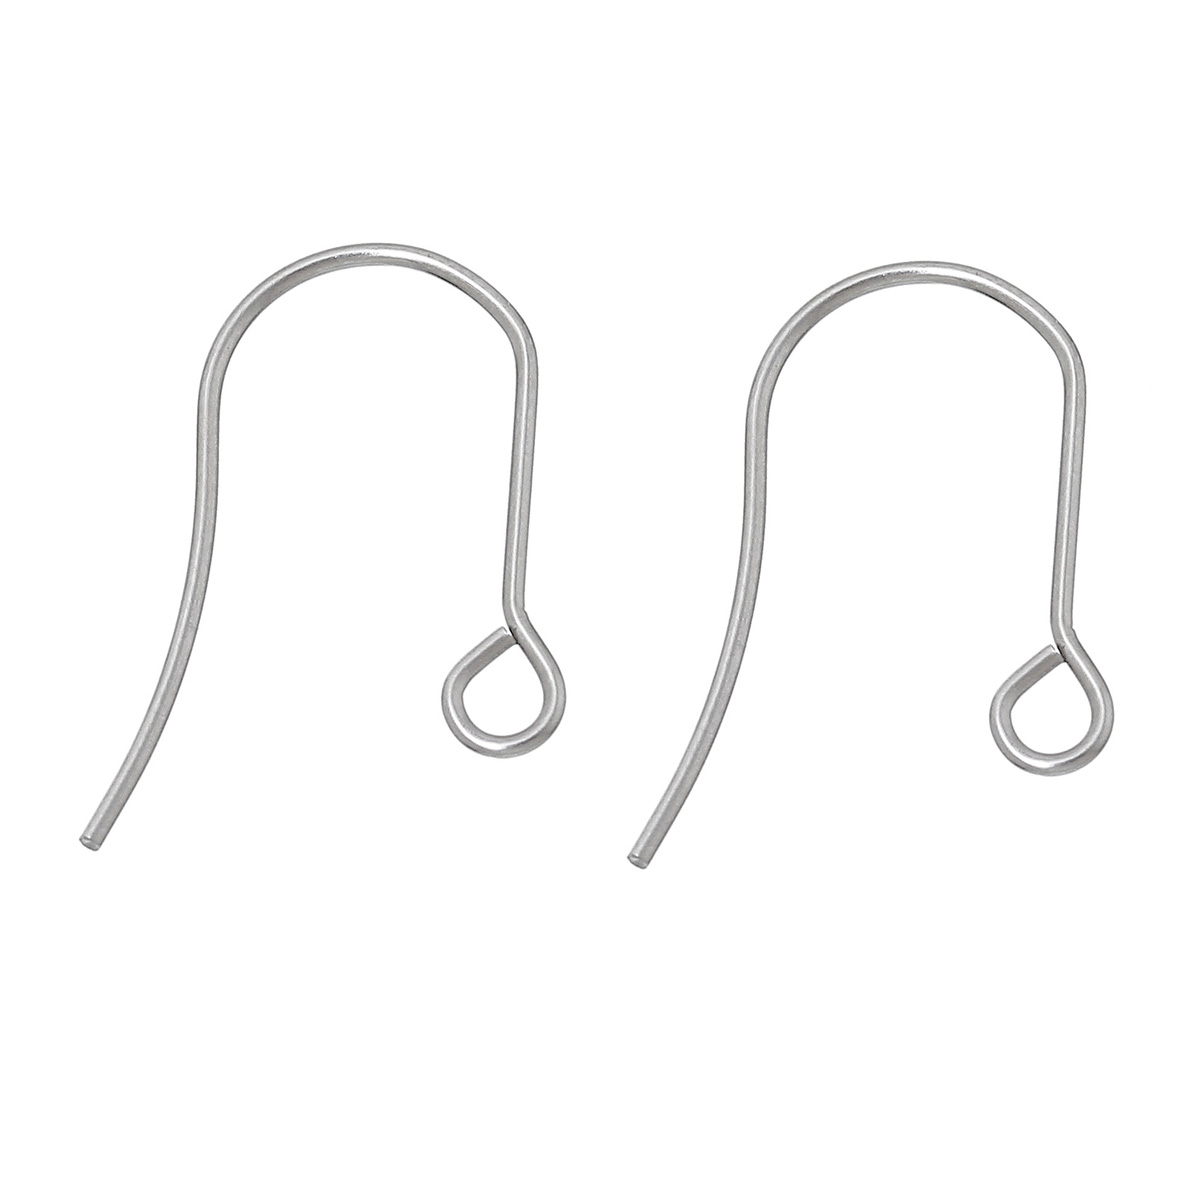 Doreenbeads Stainless Steel Ear Wire Hooks Earring